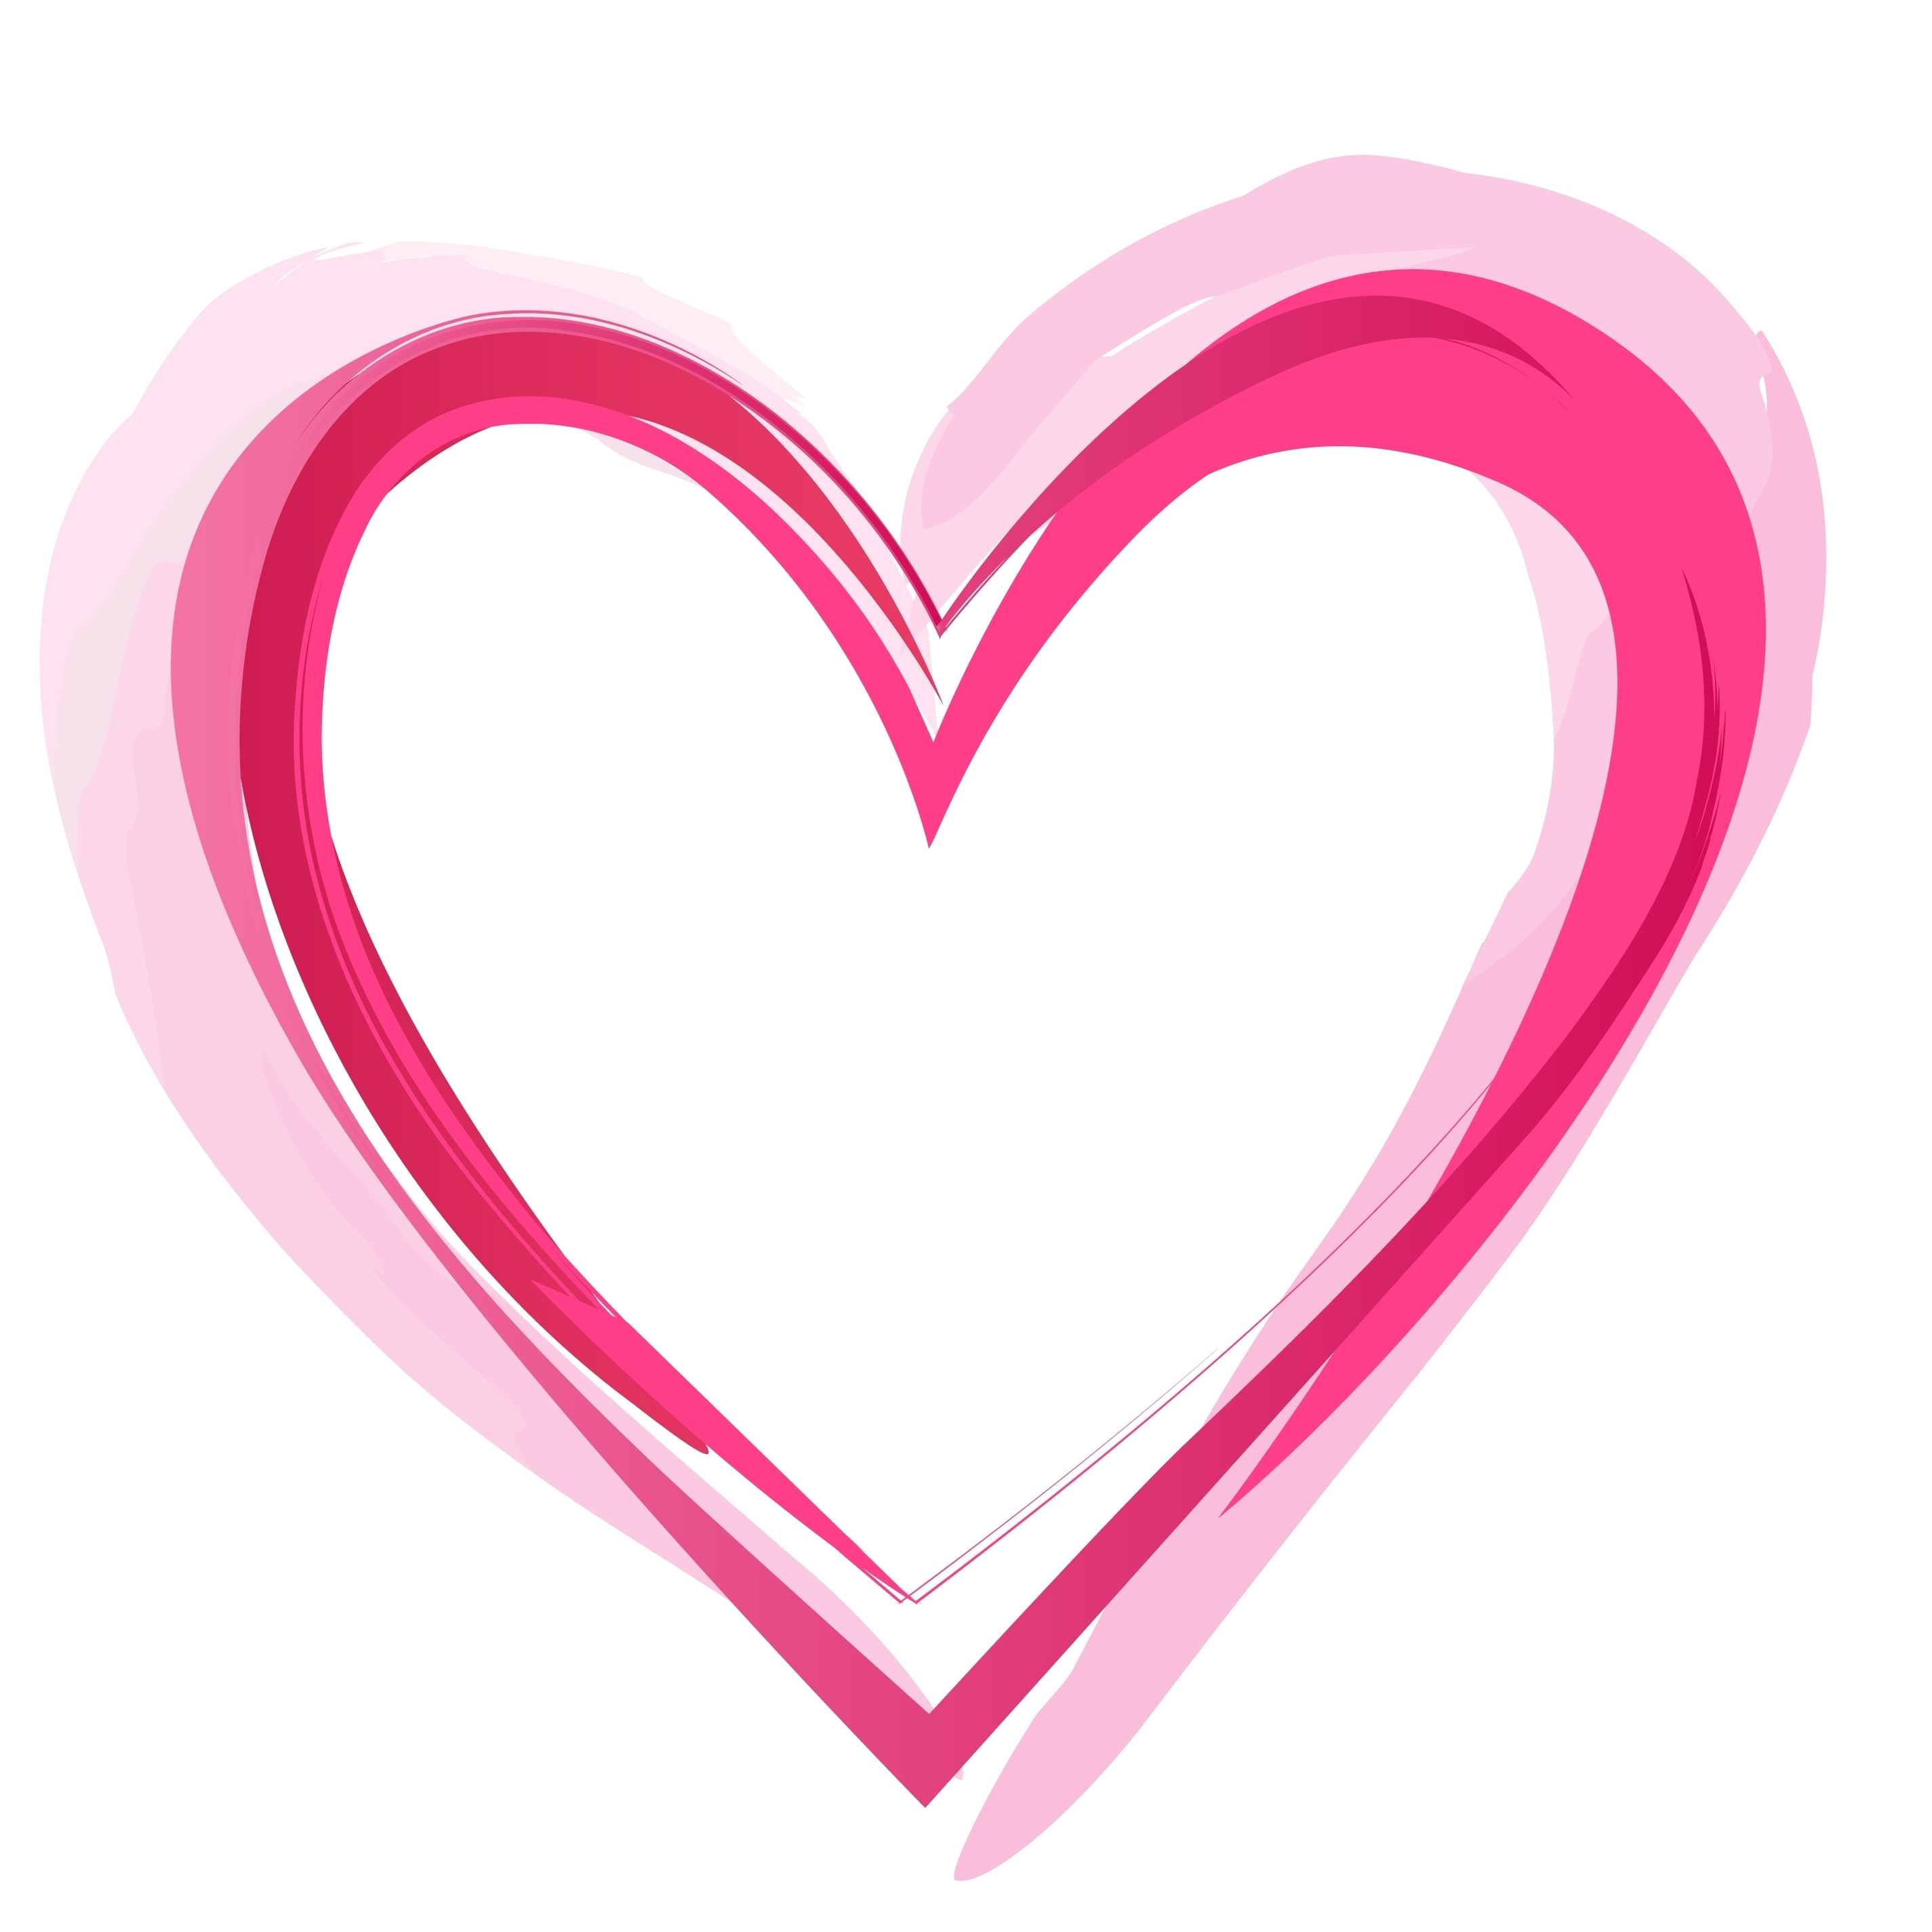 Pink child heart outline clipart.